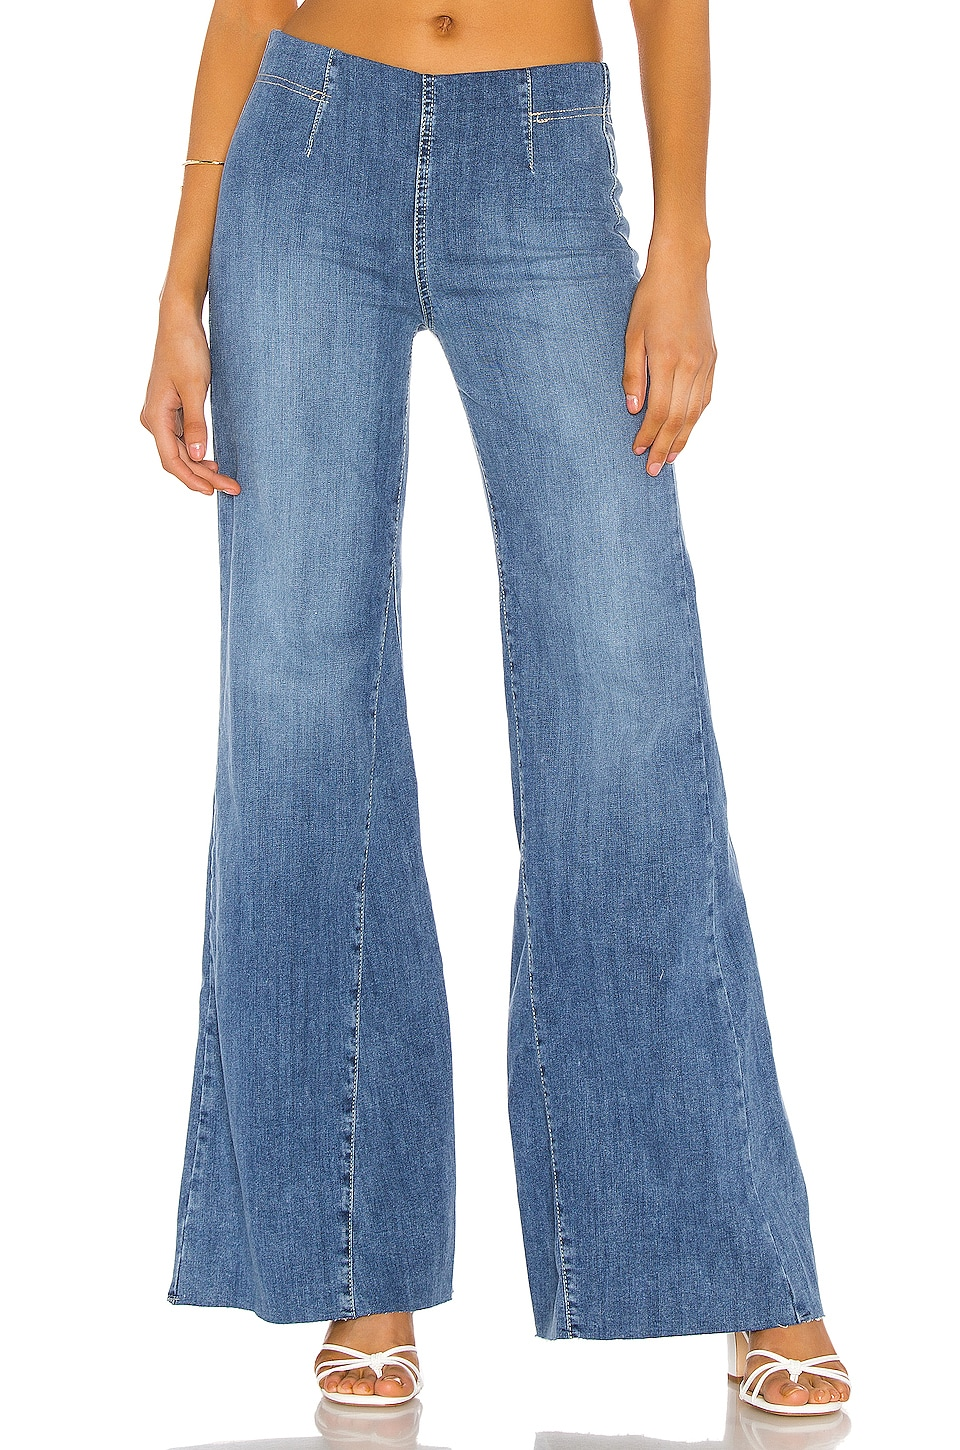 Free People Jeans Drapey A Line Pull On Jean